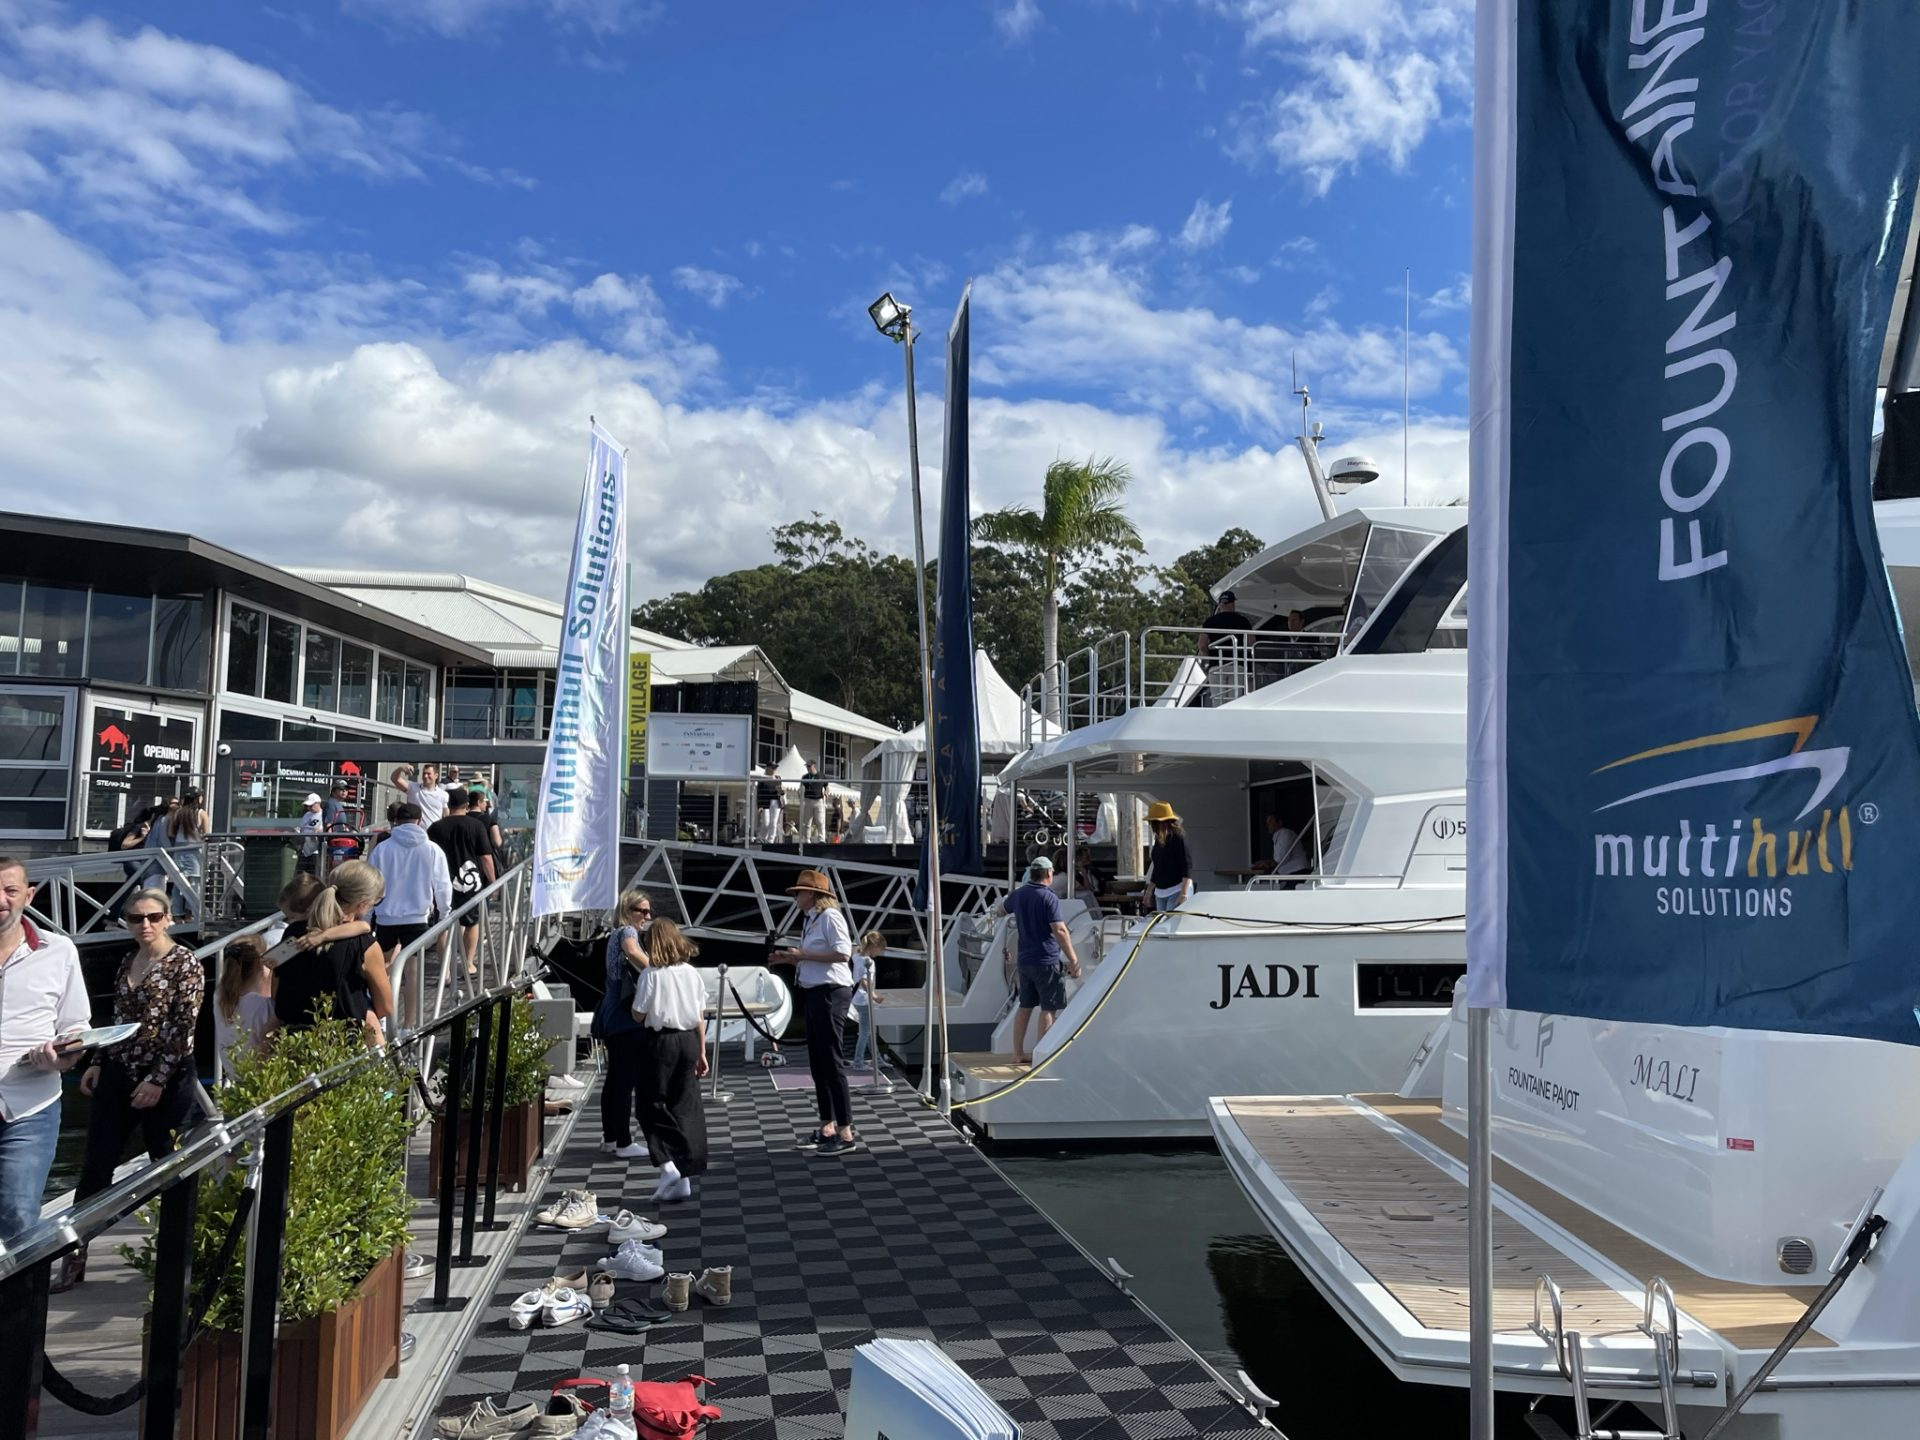 Different angle of the Multihull Solutions stand at the Sanctuary Cove International Boat Show